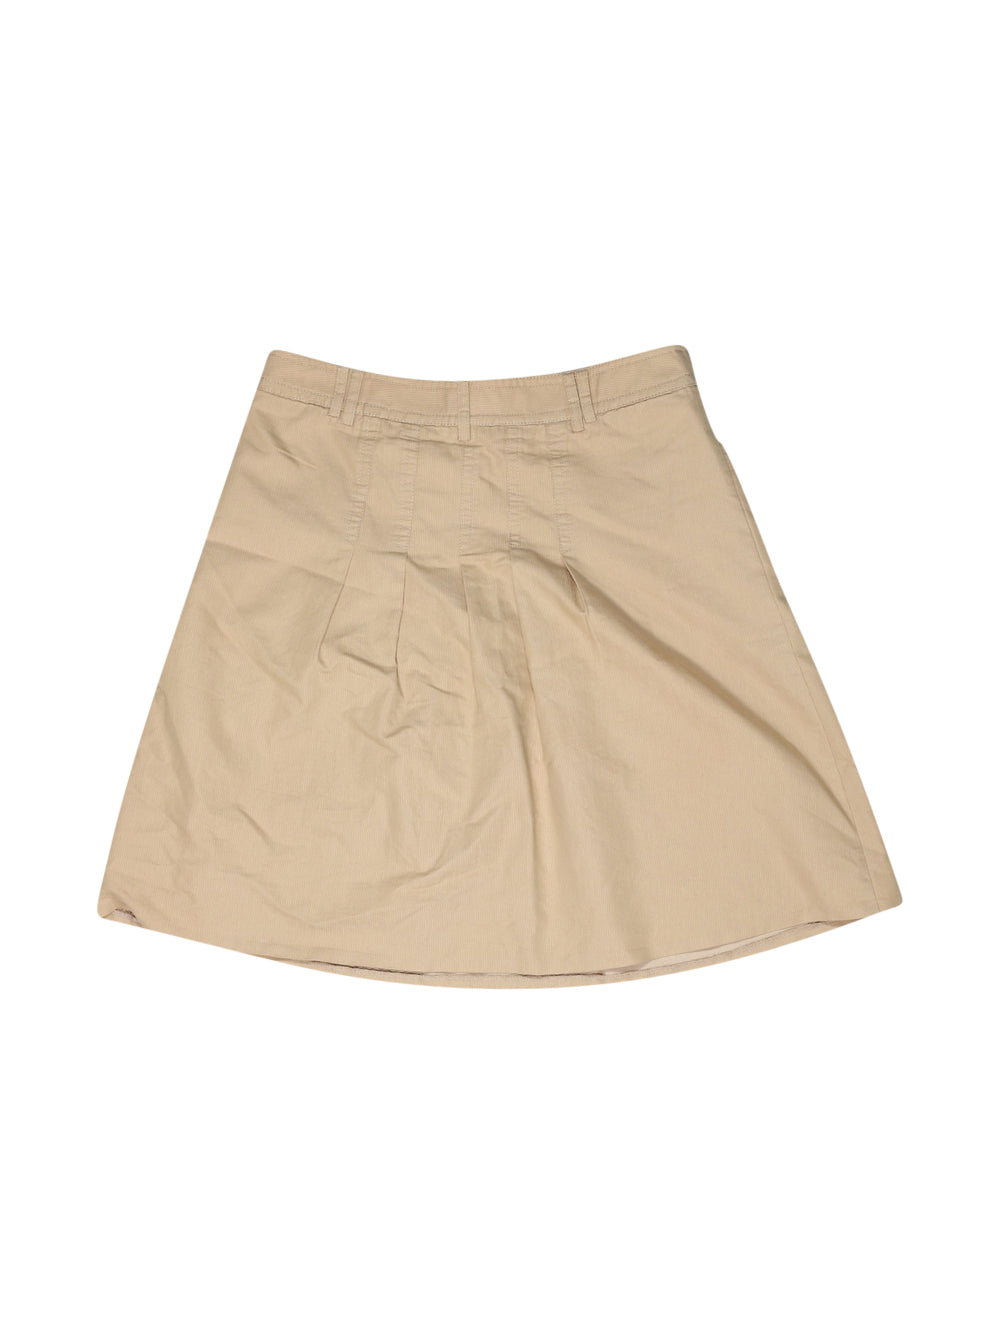 Back photo of Preloved Esprit Beige Woman's skirt - size 10/M